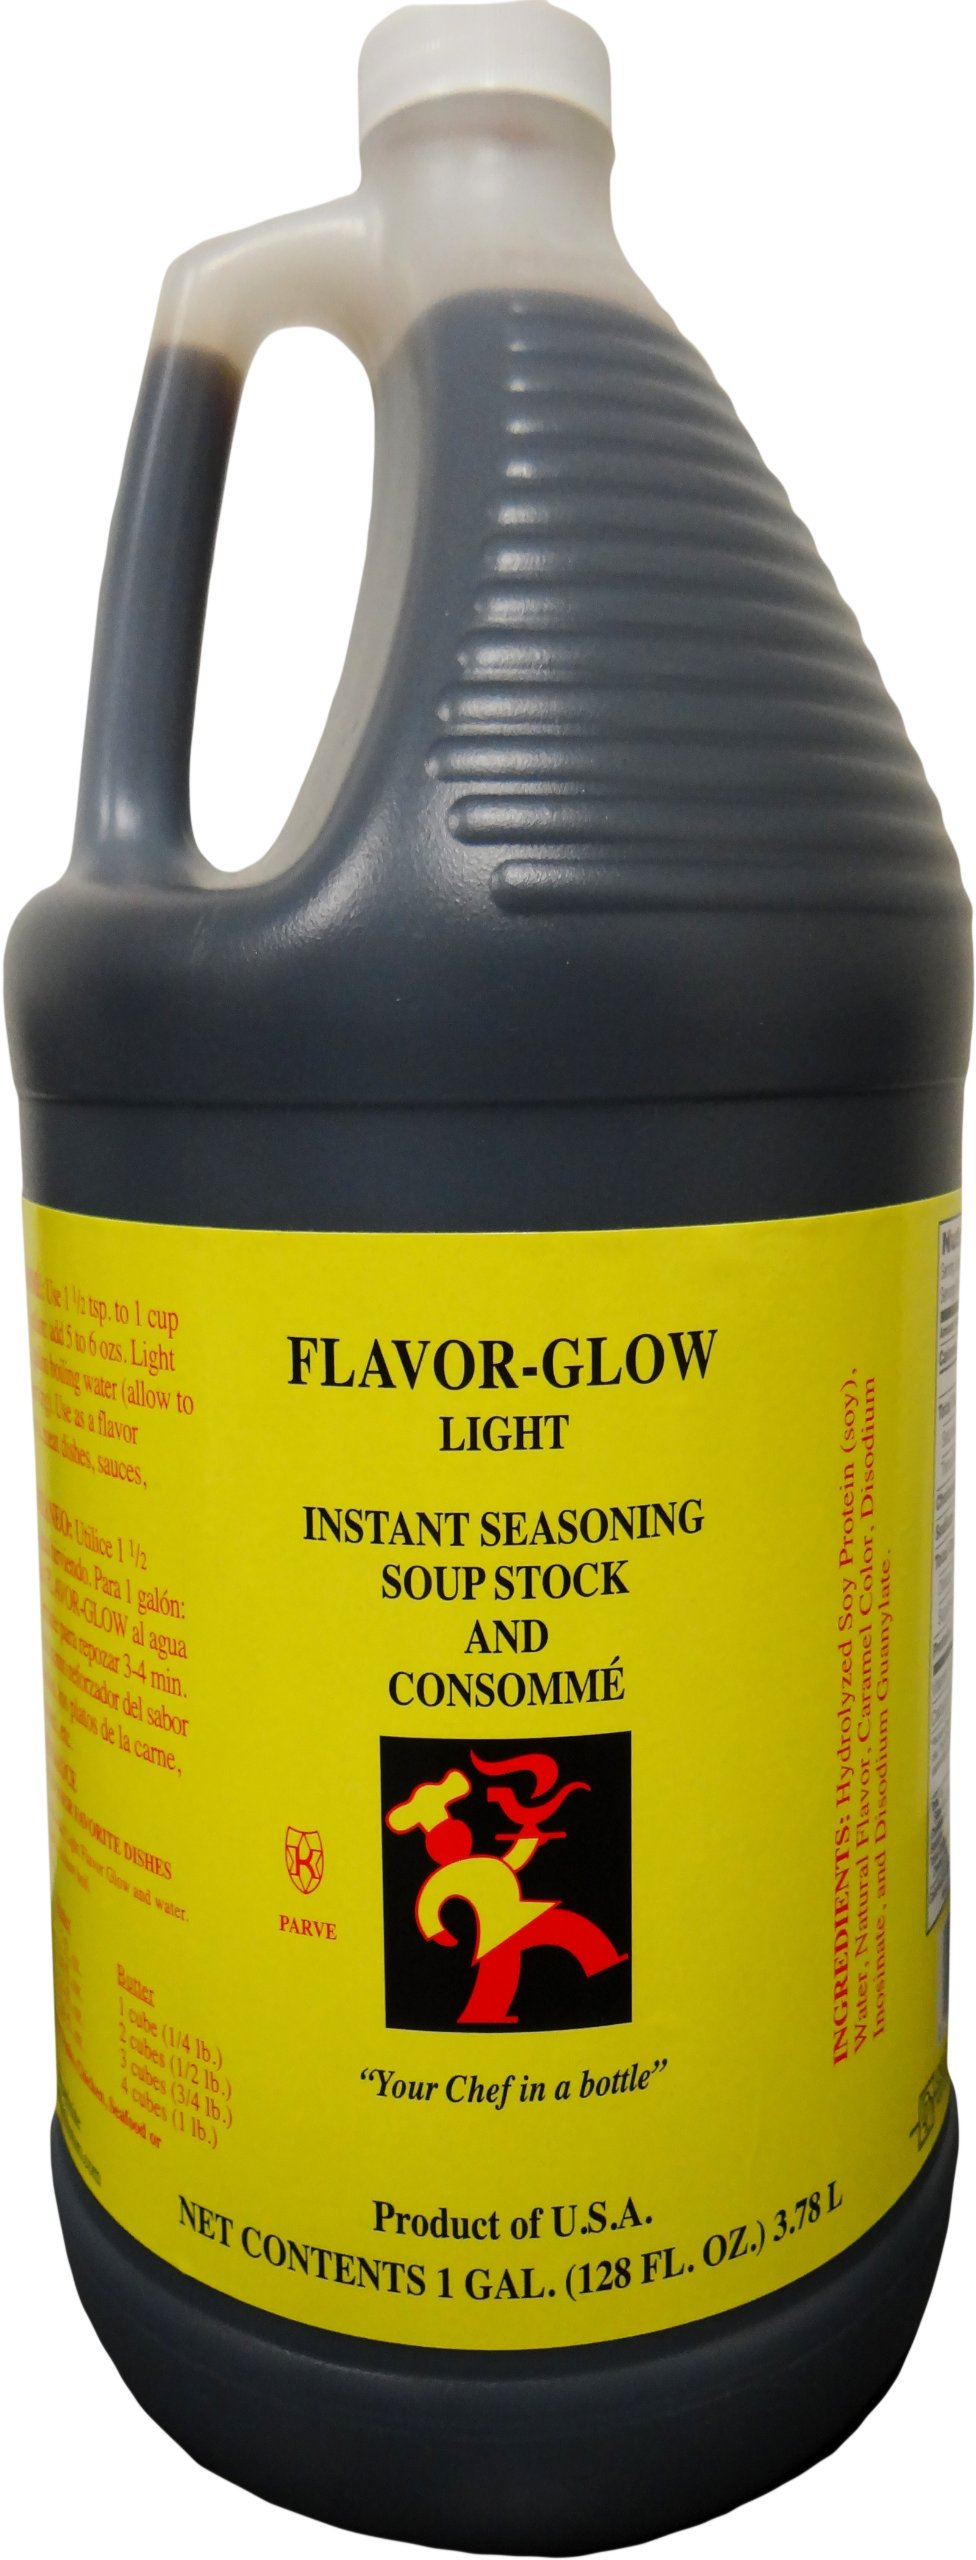 Light Flavor Glow (4 Pack)